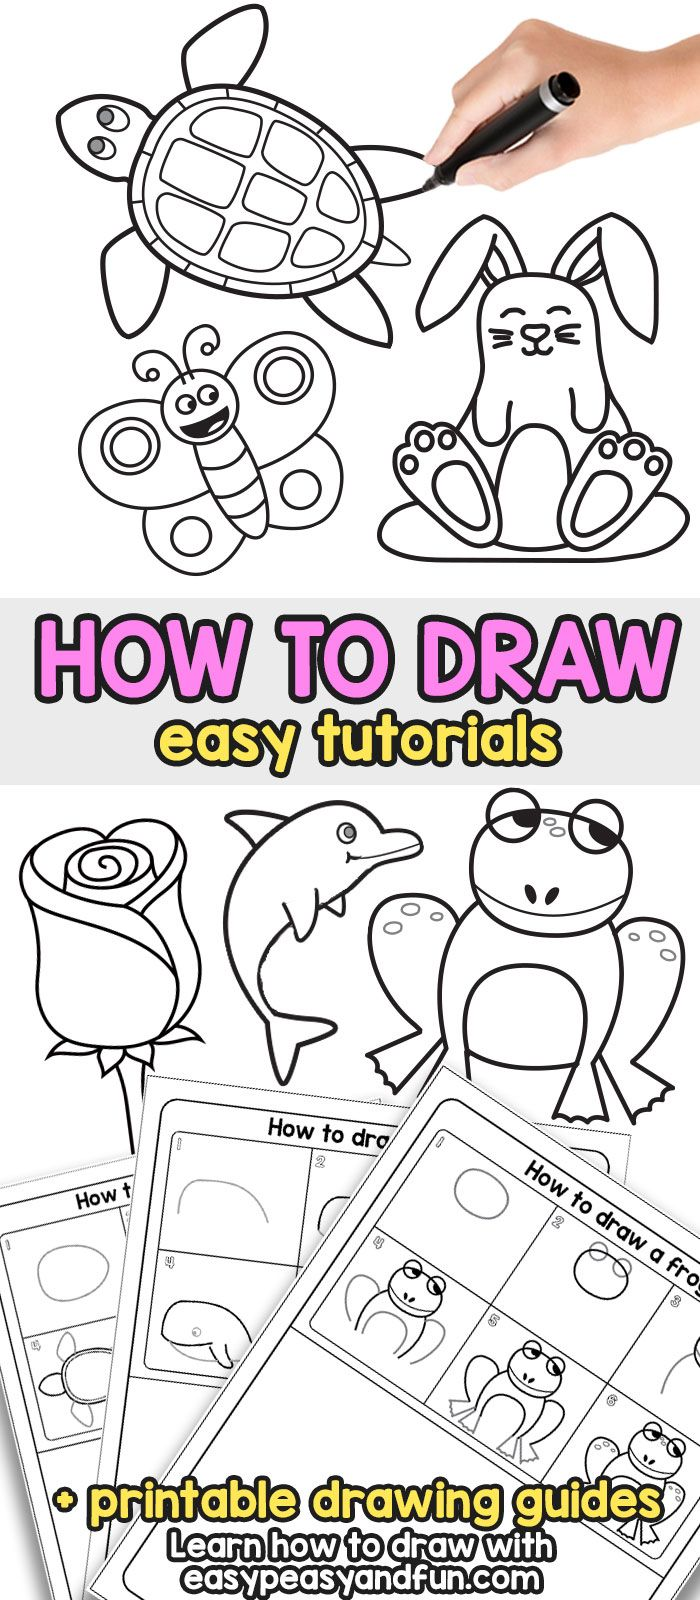 How to Draw - Step by Step Drawing For Kids and Beginners   Boys ...